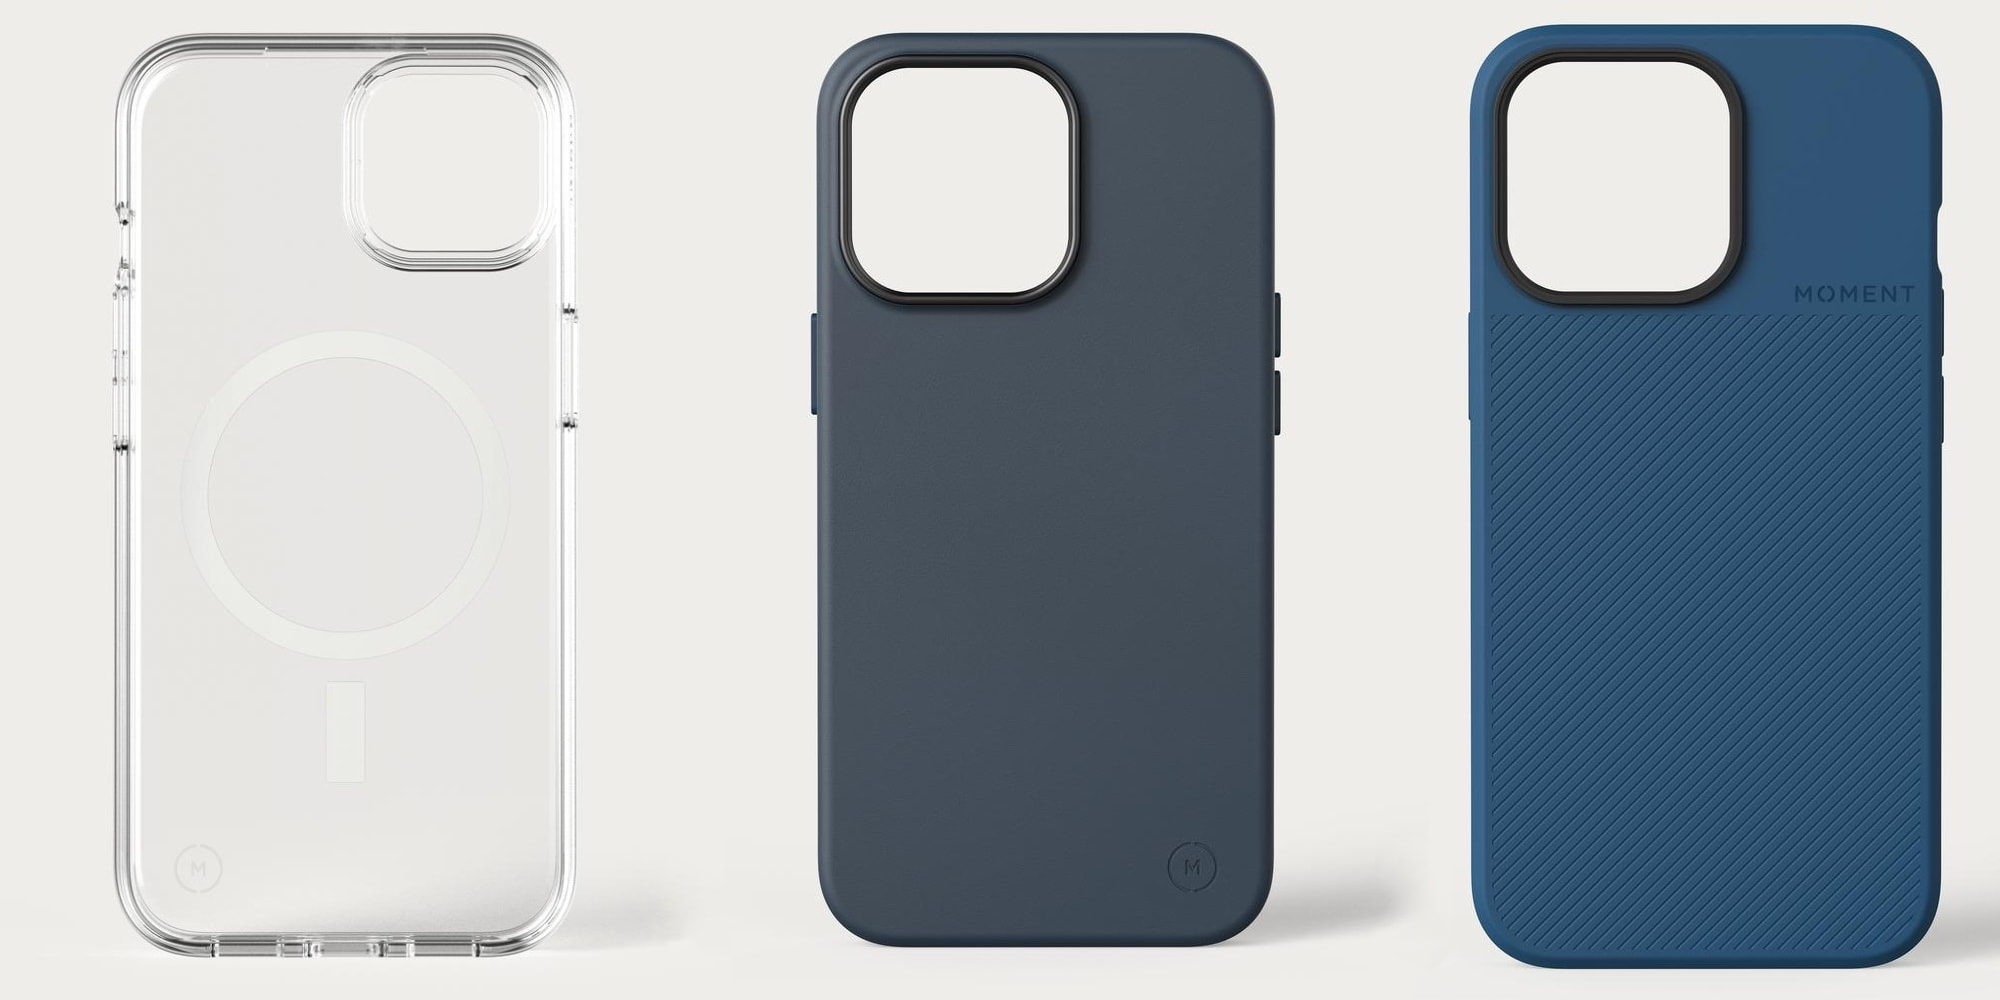 Moment offers three new cases for the iPhone 13 series.